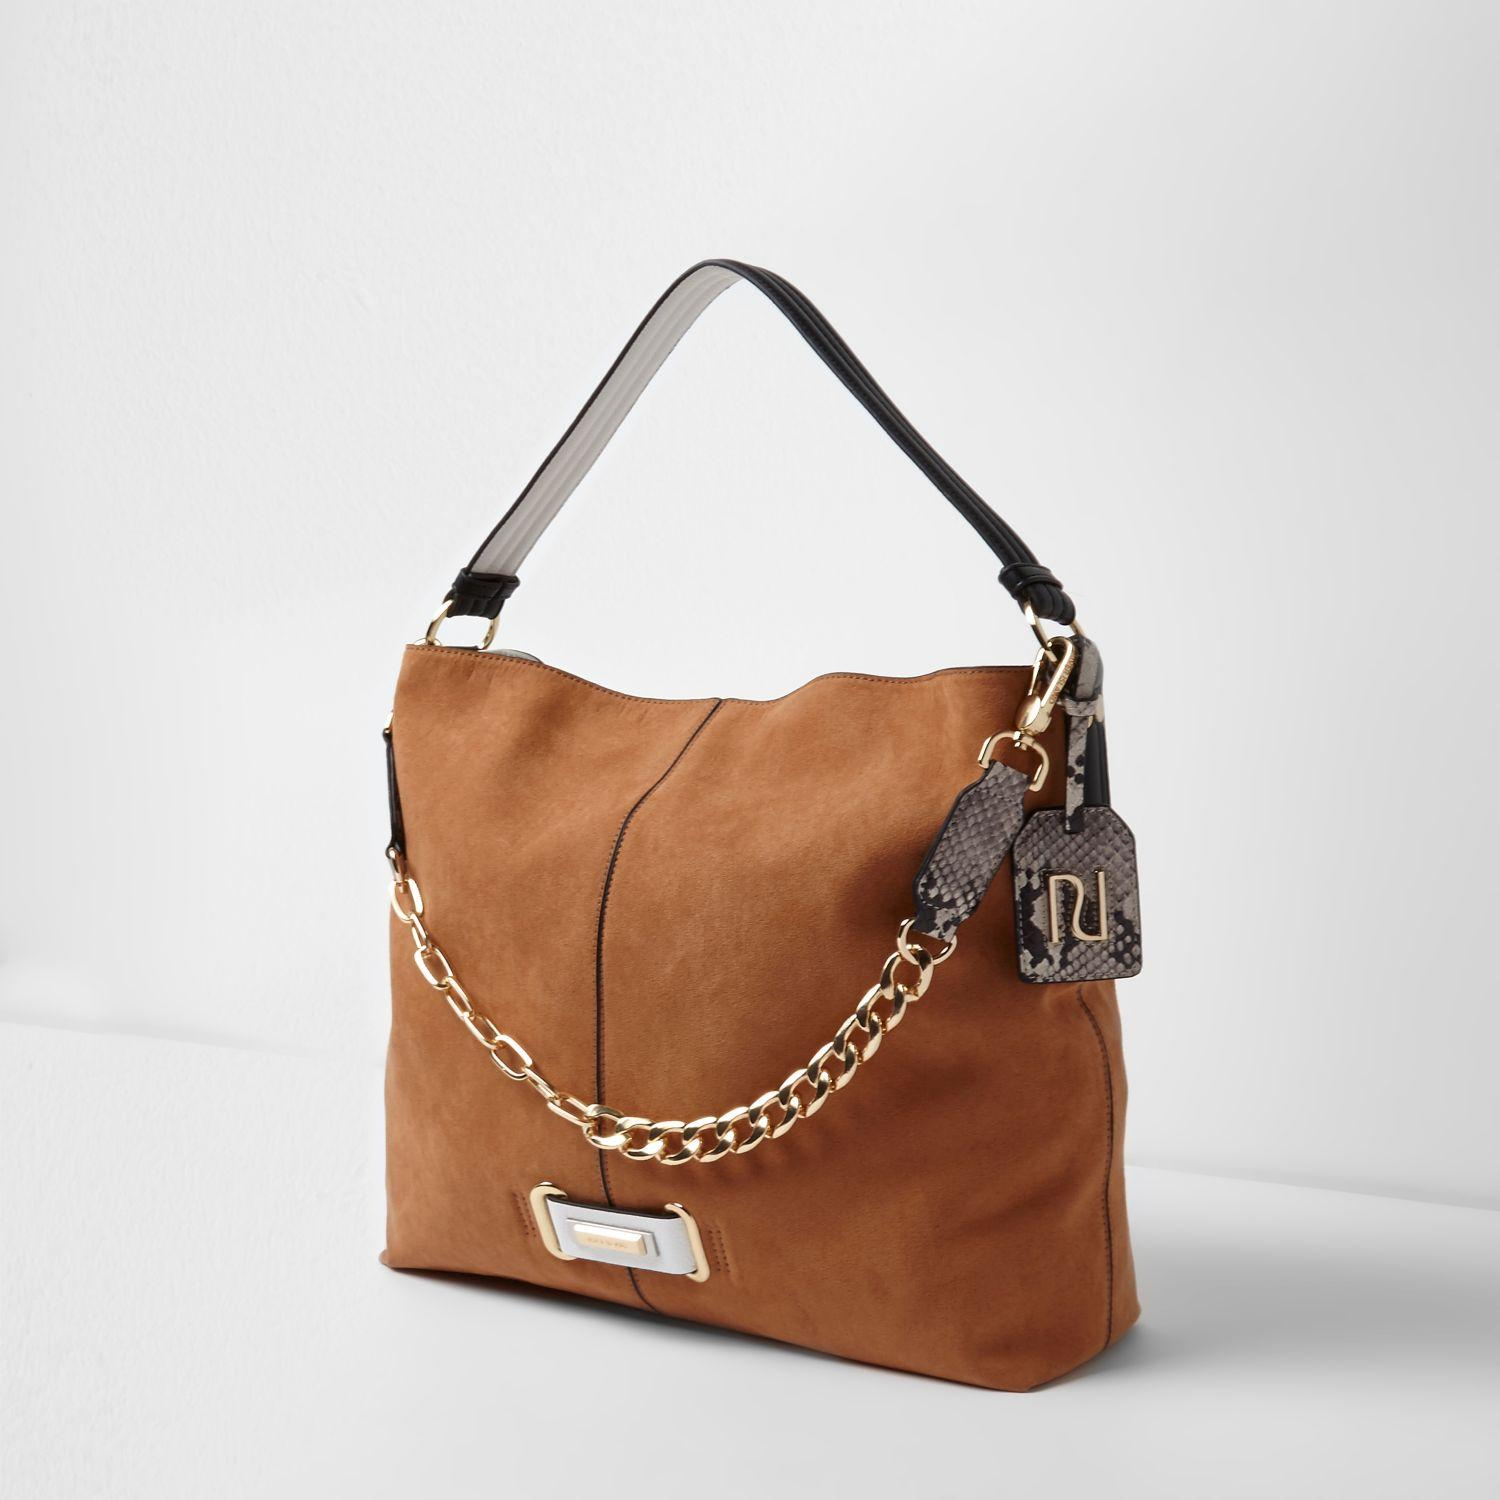 6be45ef5c2c9 Lyst - River Island Tan Chain Front Slouch Underarm Bag in Brown